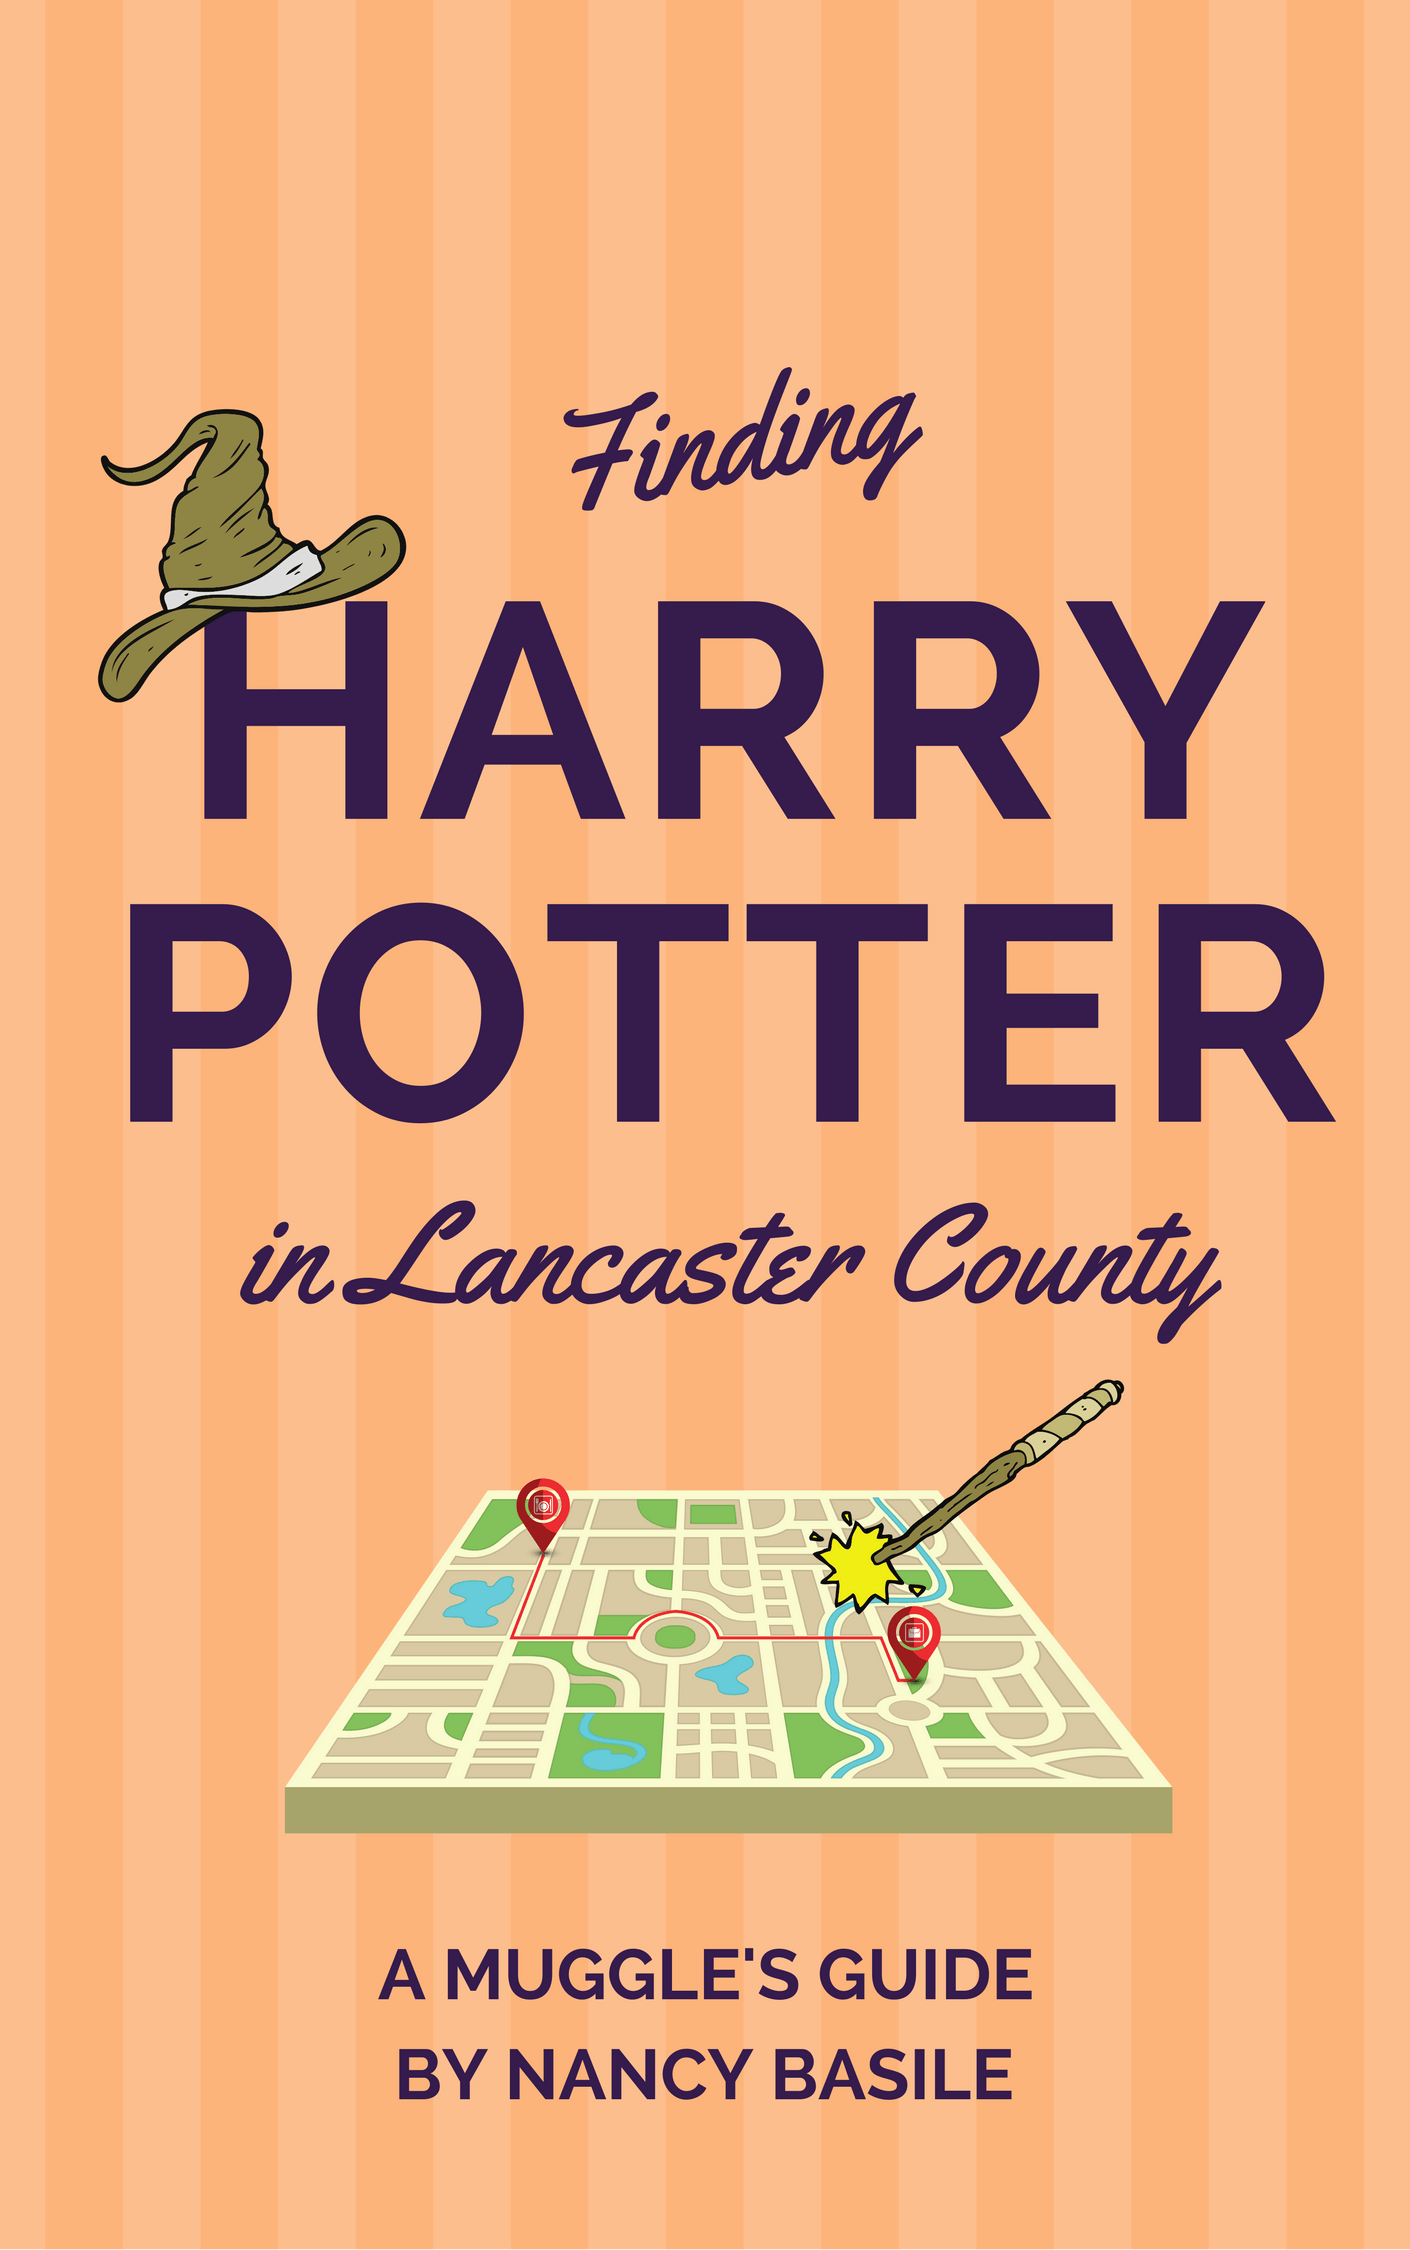 You NEED Finding #HarryPotter in #Lancaster County: A Muggle's Guide if you're a fan. #geektravel #amishcountry